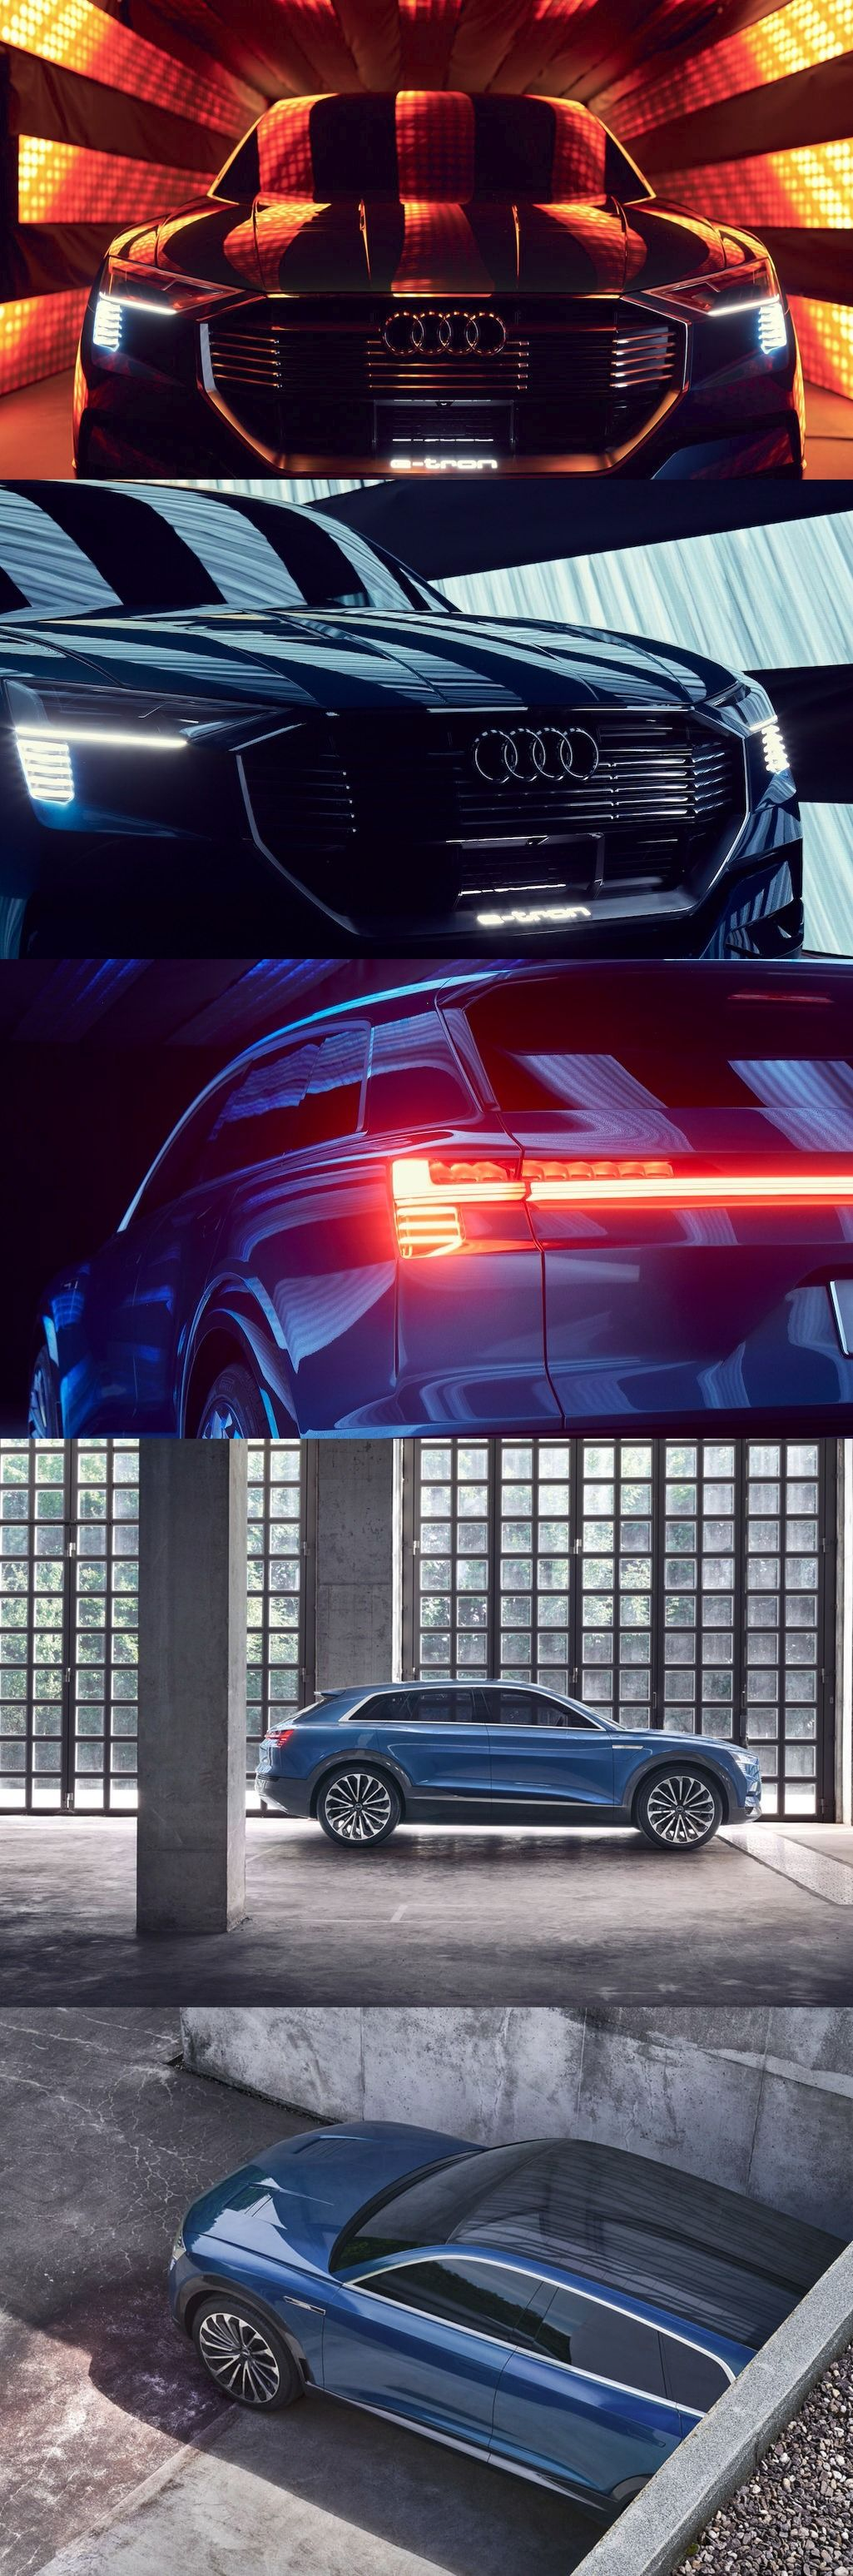 Audi E Tron Suv Unveiled With Spark Now Slated August Launch Audi Electric Cars Audi E Tron